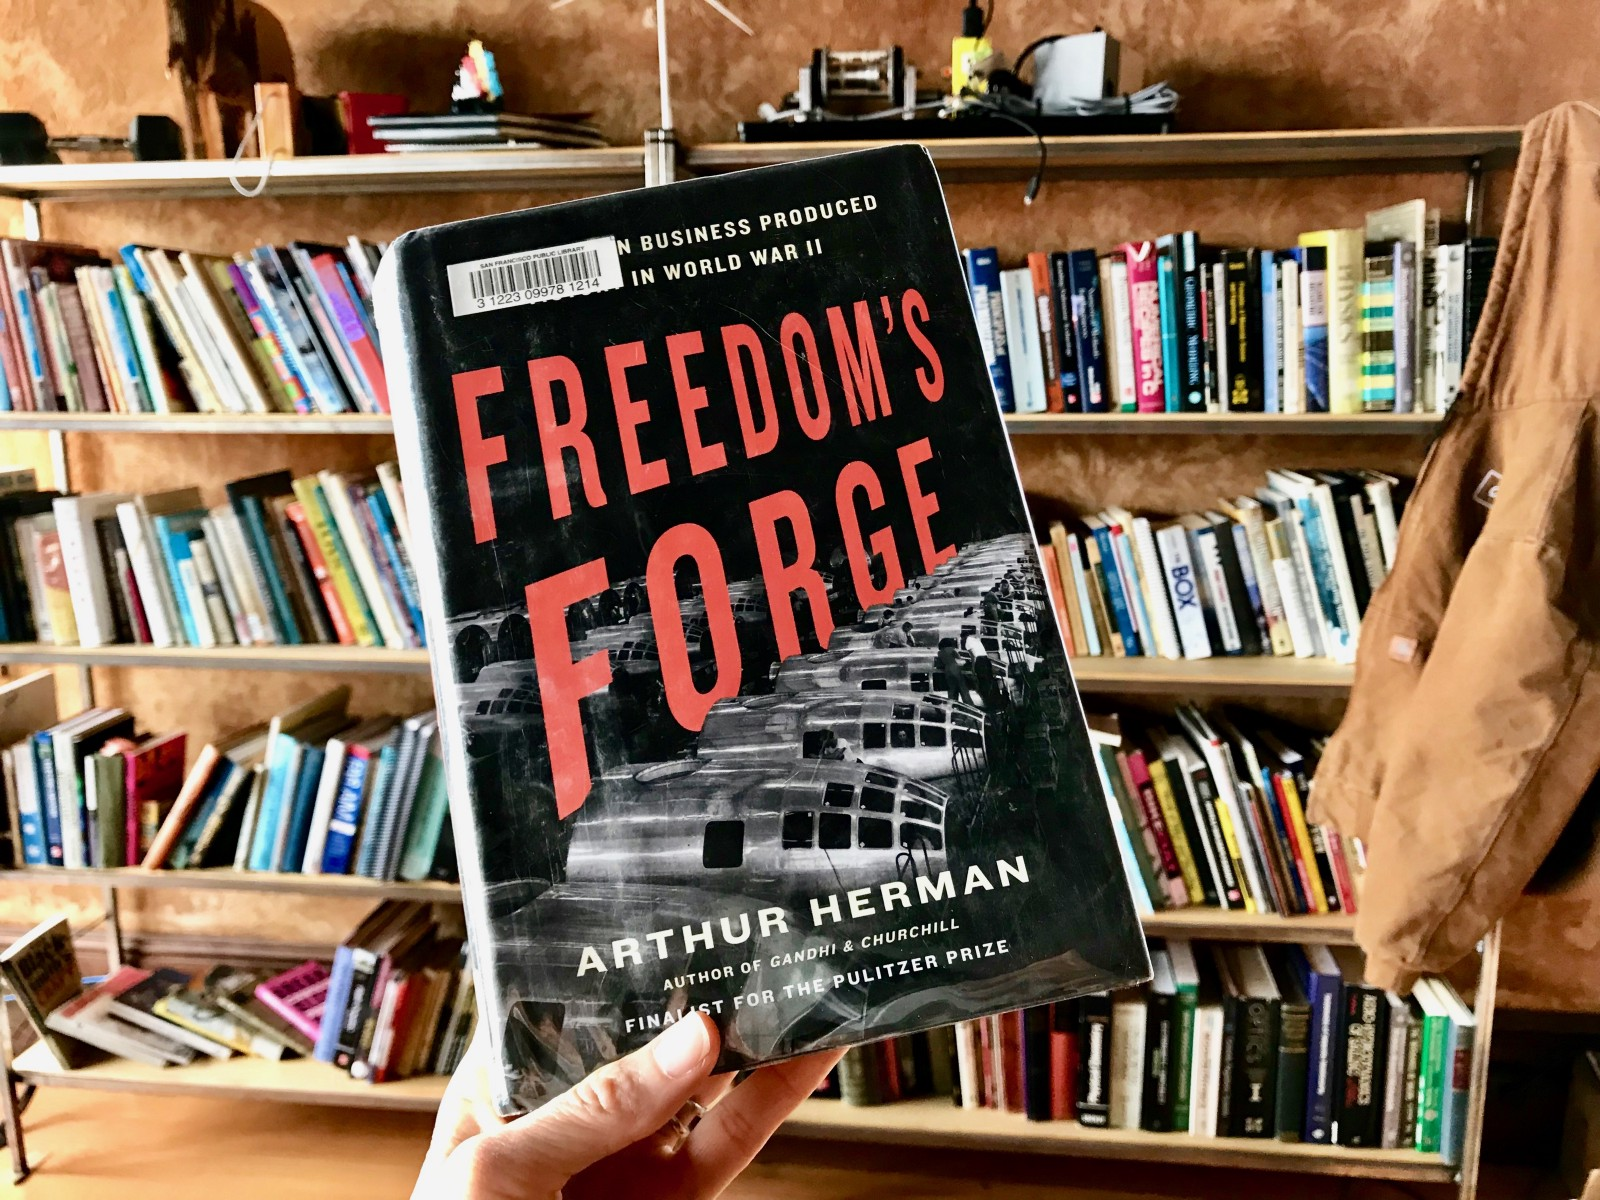 It is a reasonable argument to say that the US manufacturing buildup for WW2 was a bigger generator of jobs (and jobs that sustained) than the New Deal. Freedom's Forge: How American Business Produced Victory in World War II details the WW2 buildup.